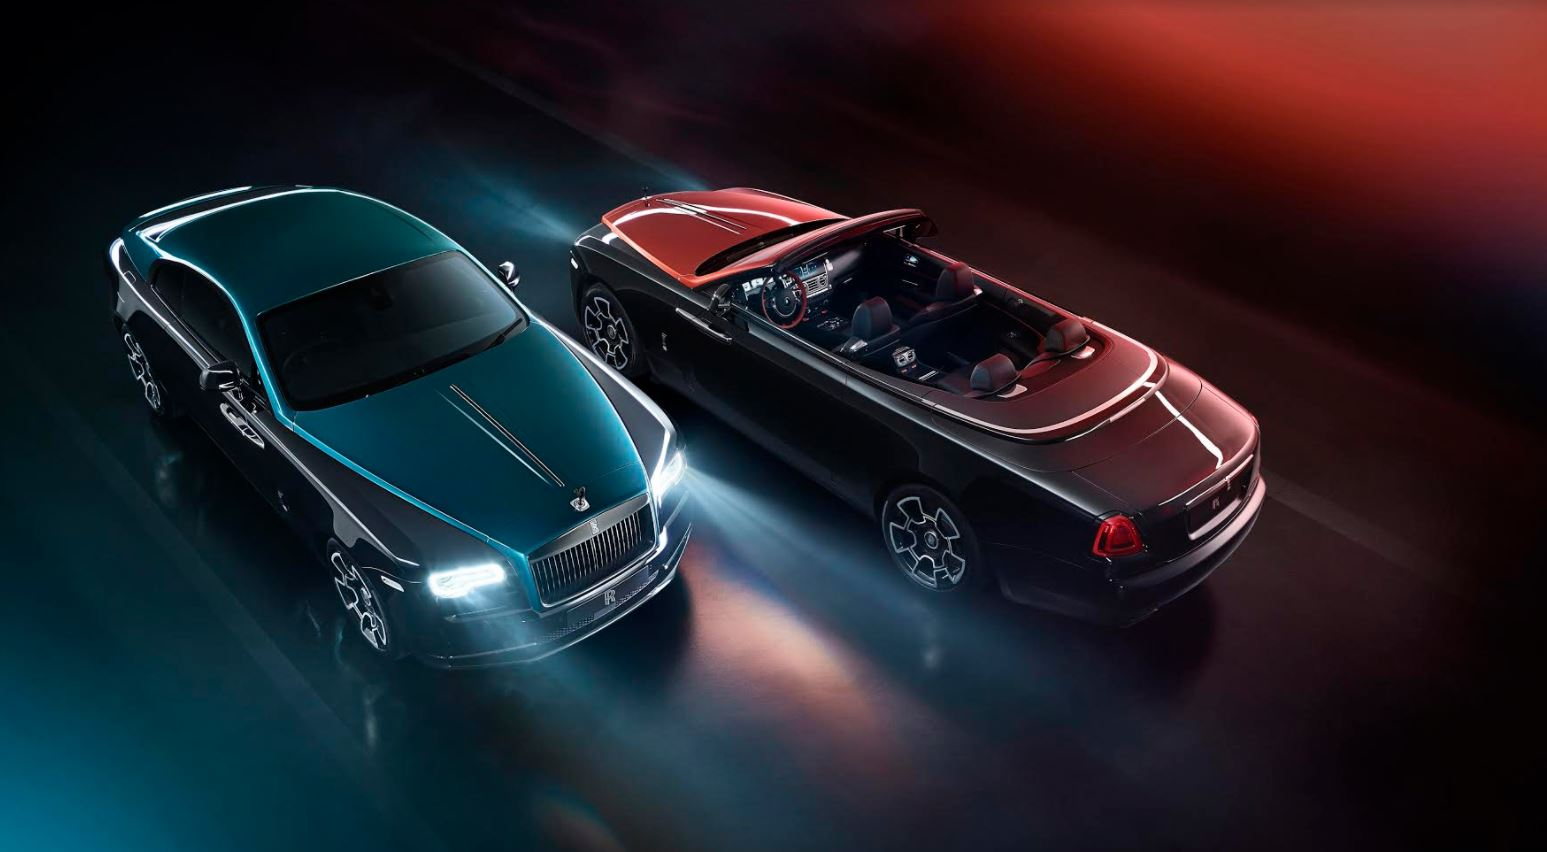 Adamas collection takes Rolls-Royce Black Badge further into the darkness